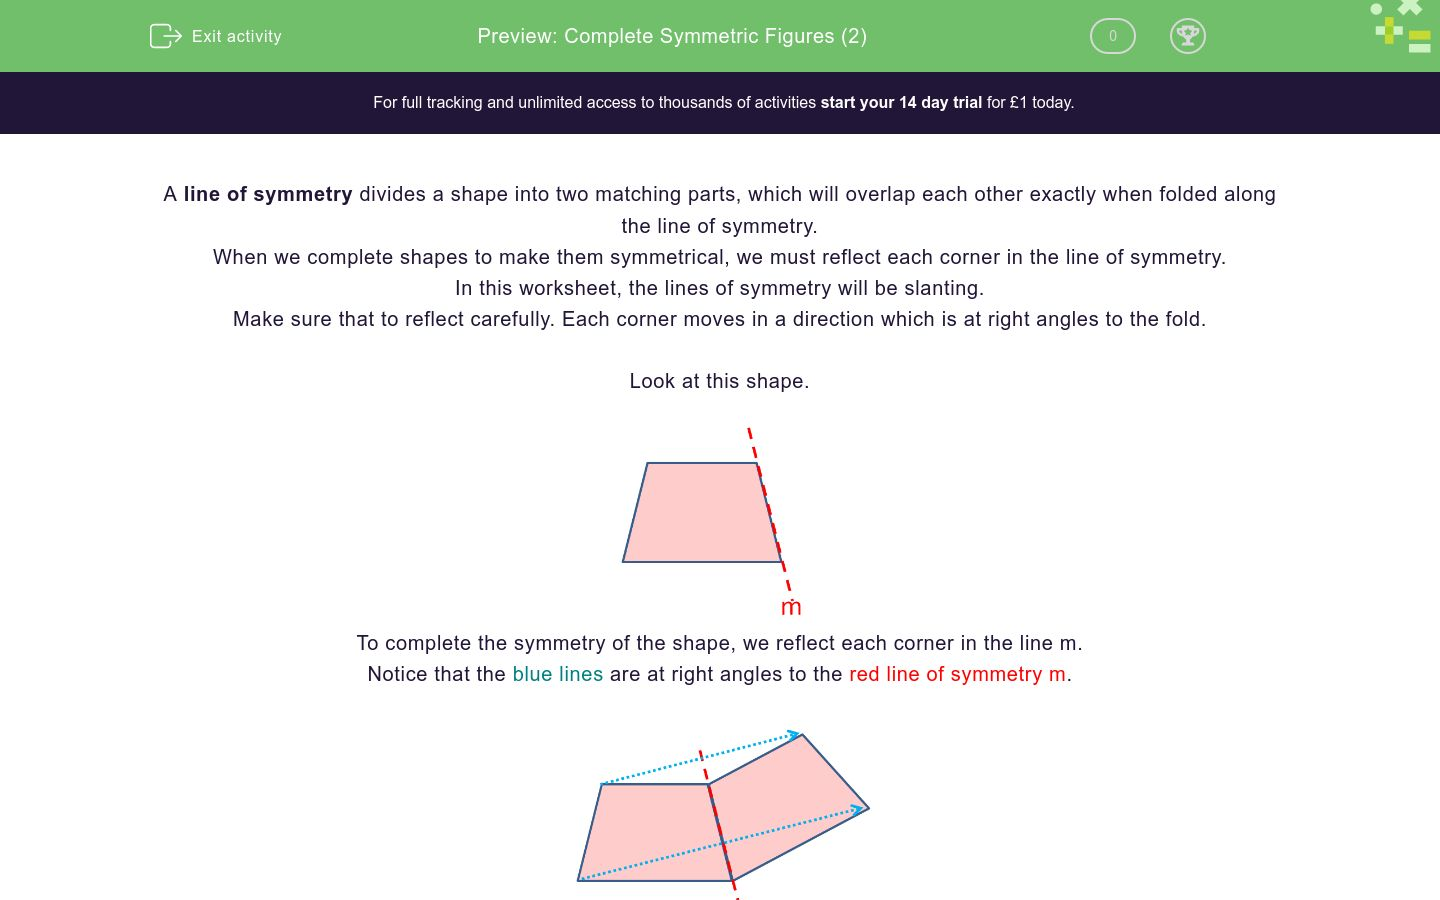 'Complete Symmetric Figures (2)' worksheet